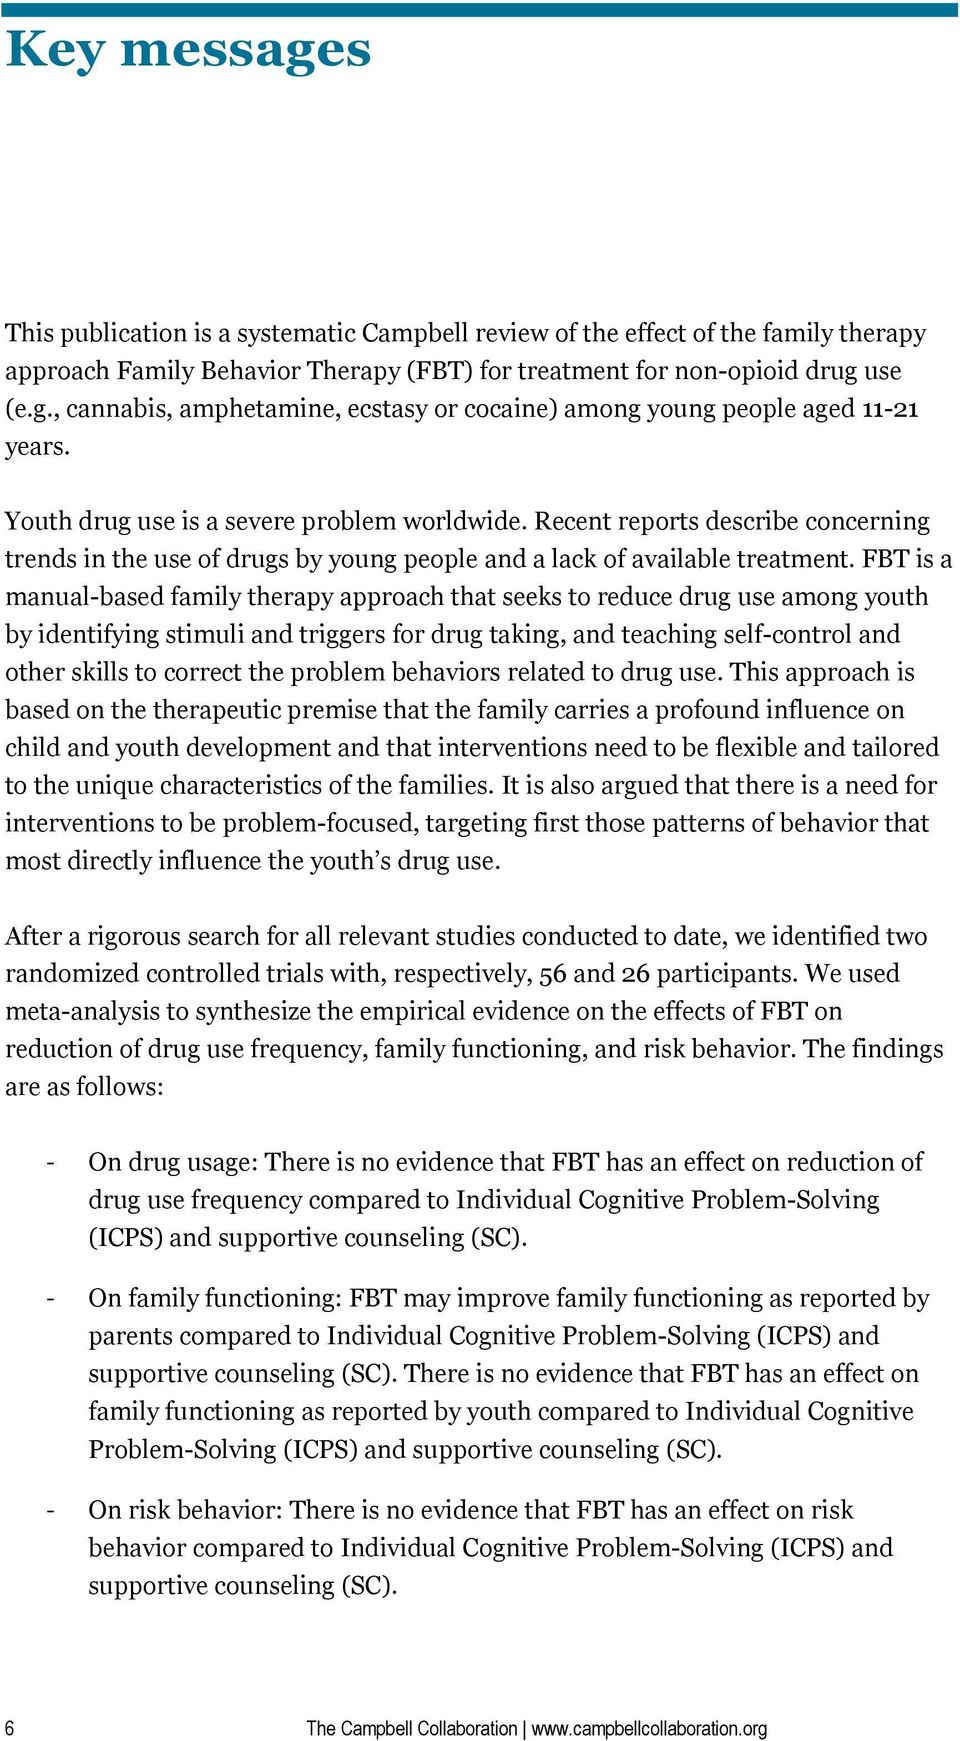 FBT is a manual-based family therapy approach that seeks to reduce drug use among youth by identifying stimuli and triggers for drug taking, and teaching self-control and other skills to correct the